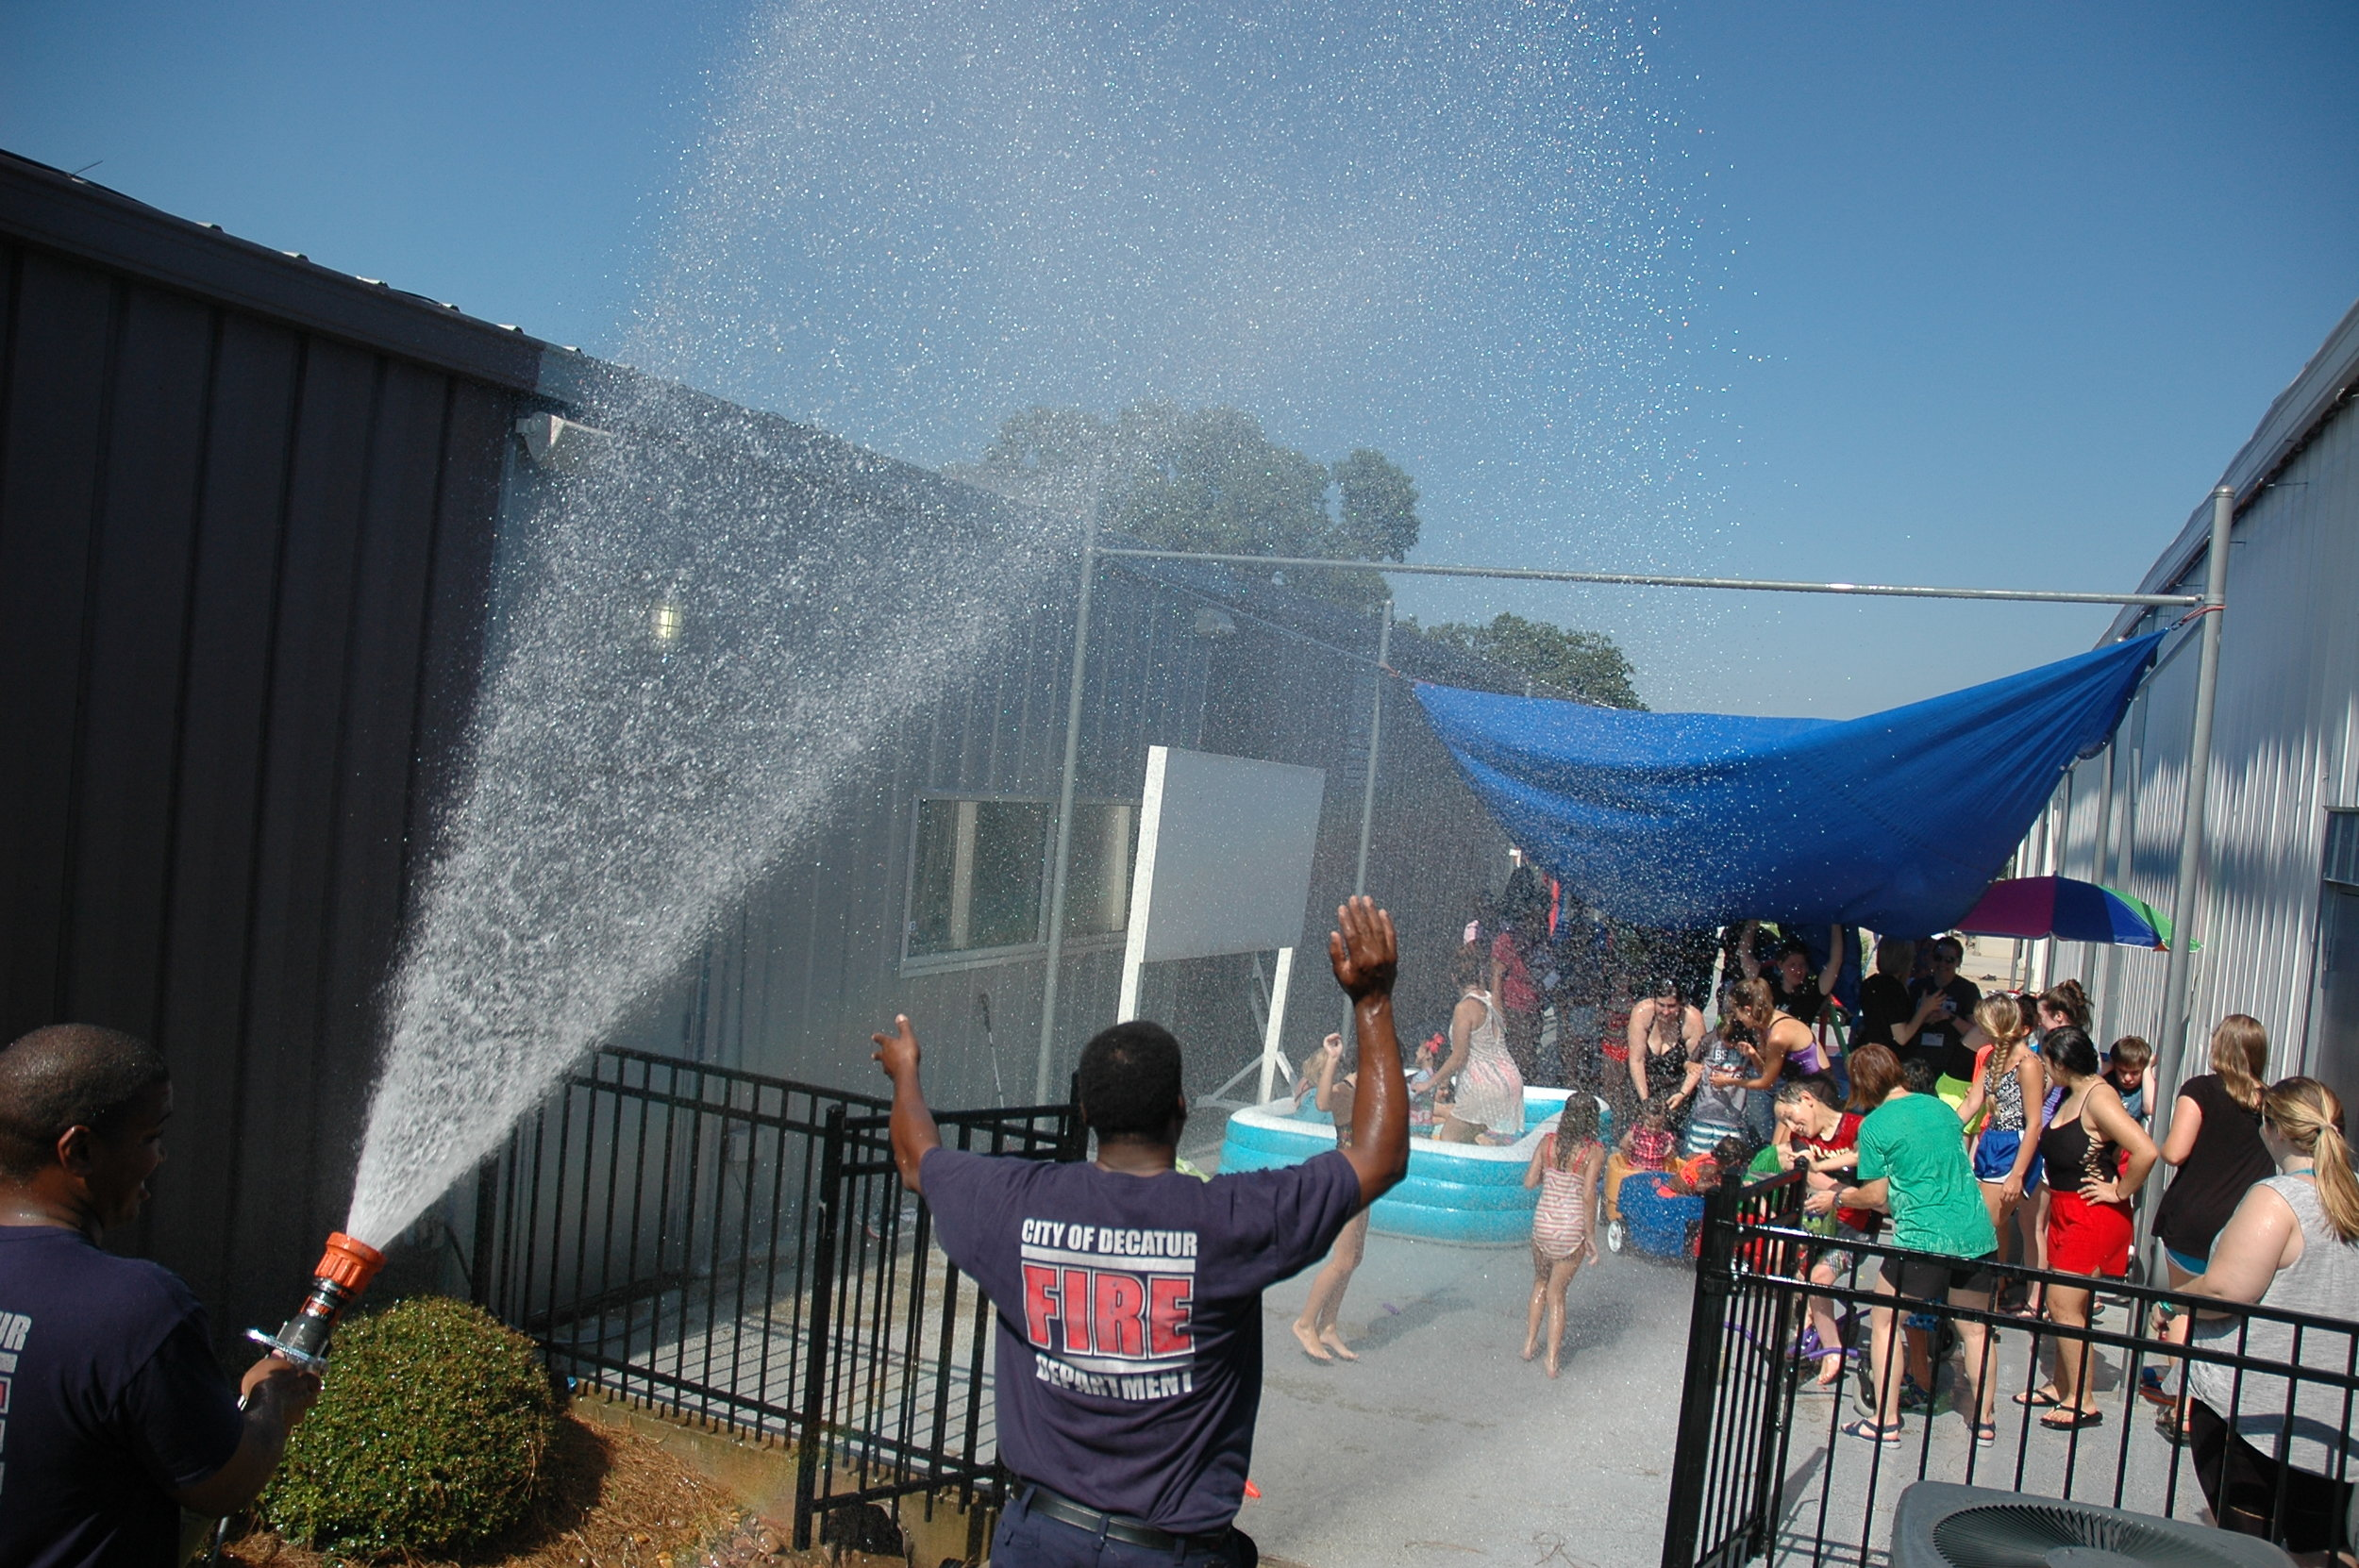 Water day is our campers' favorite day! Thank you City of Decatur Fire Department for spraying them with water.